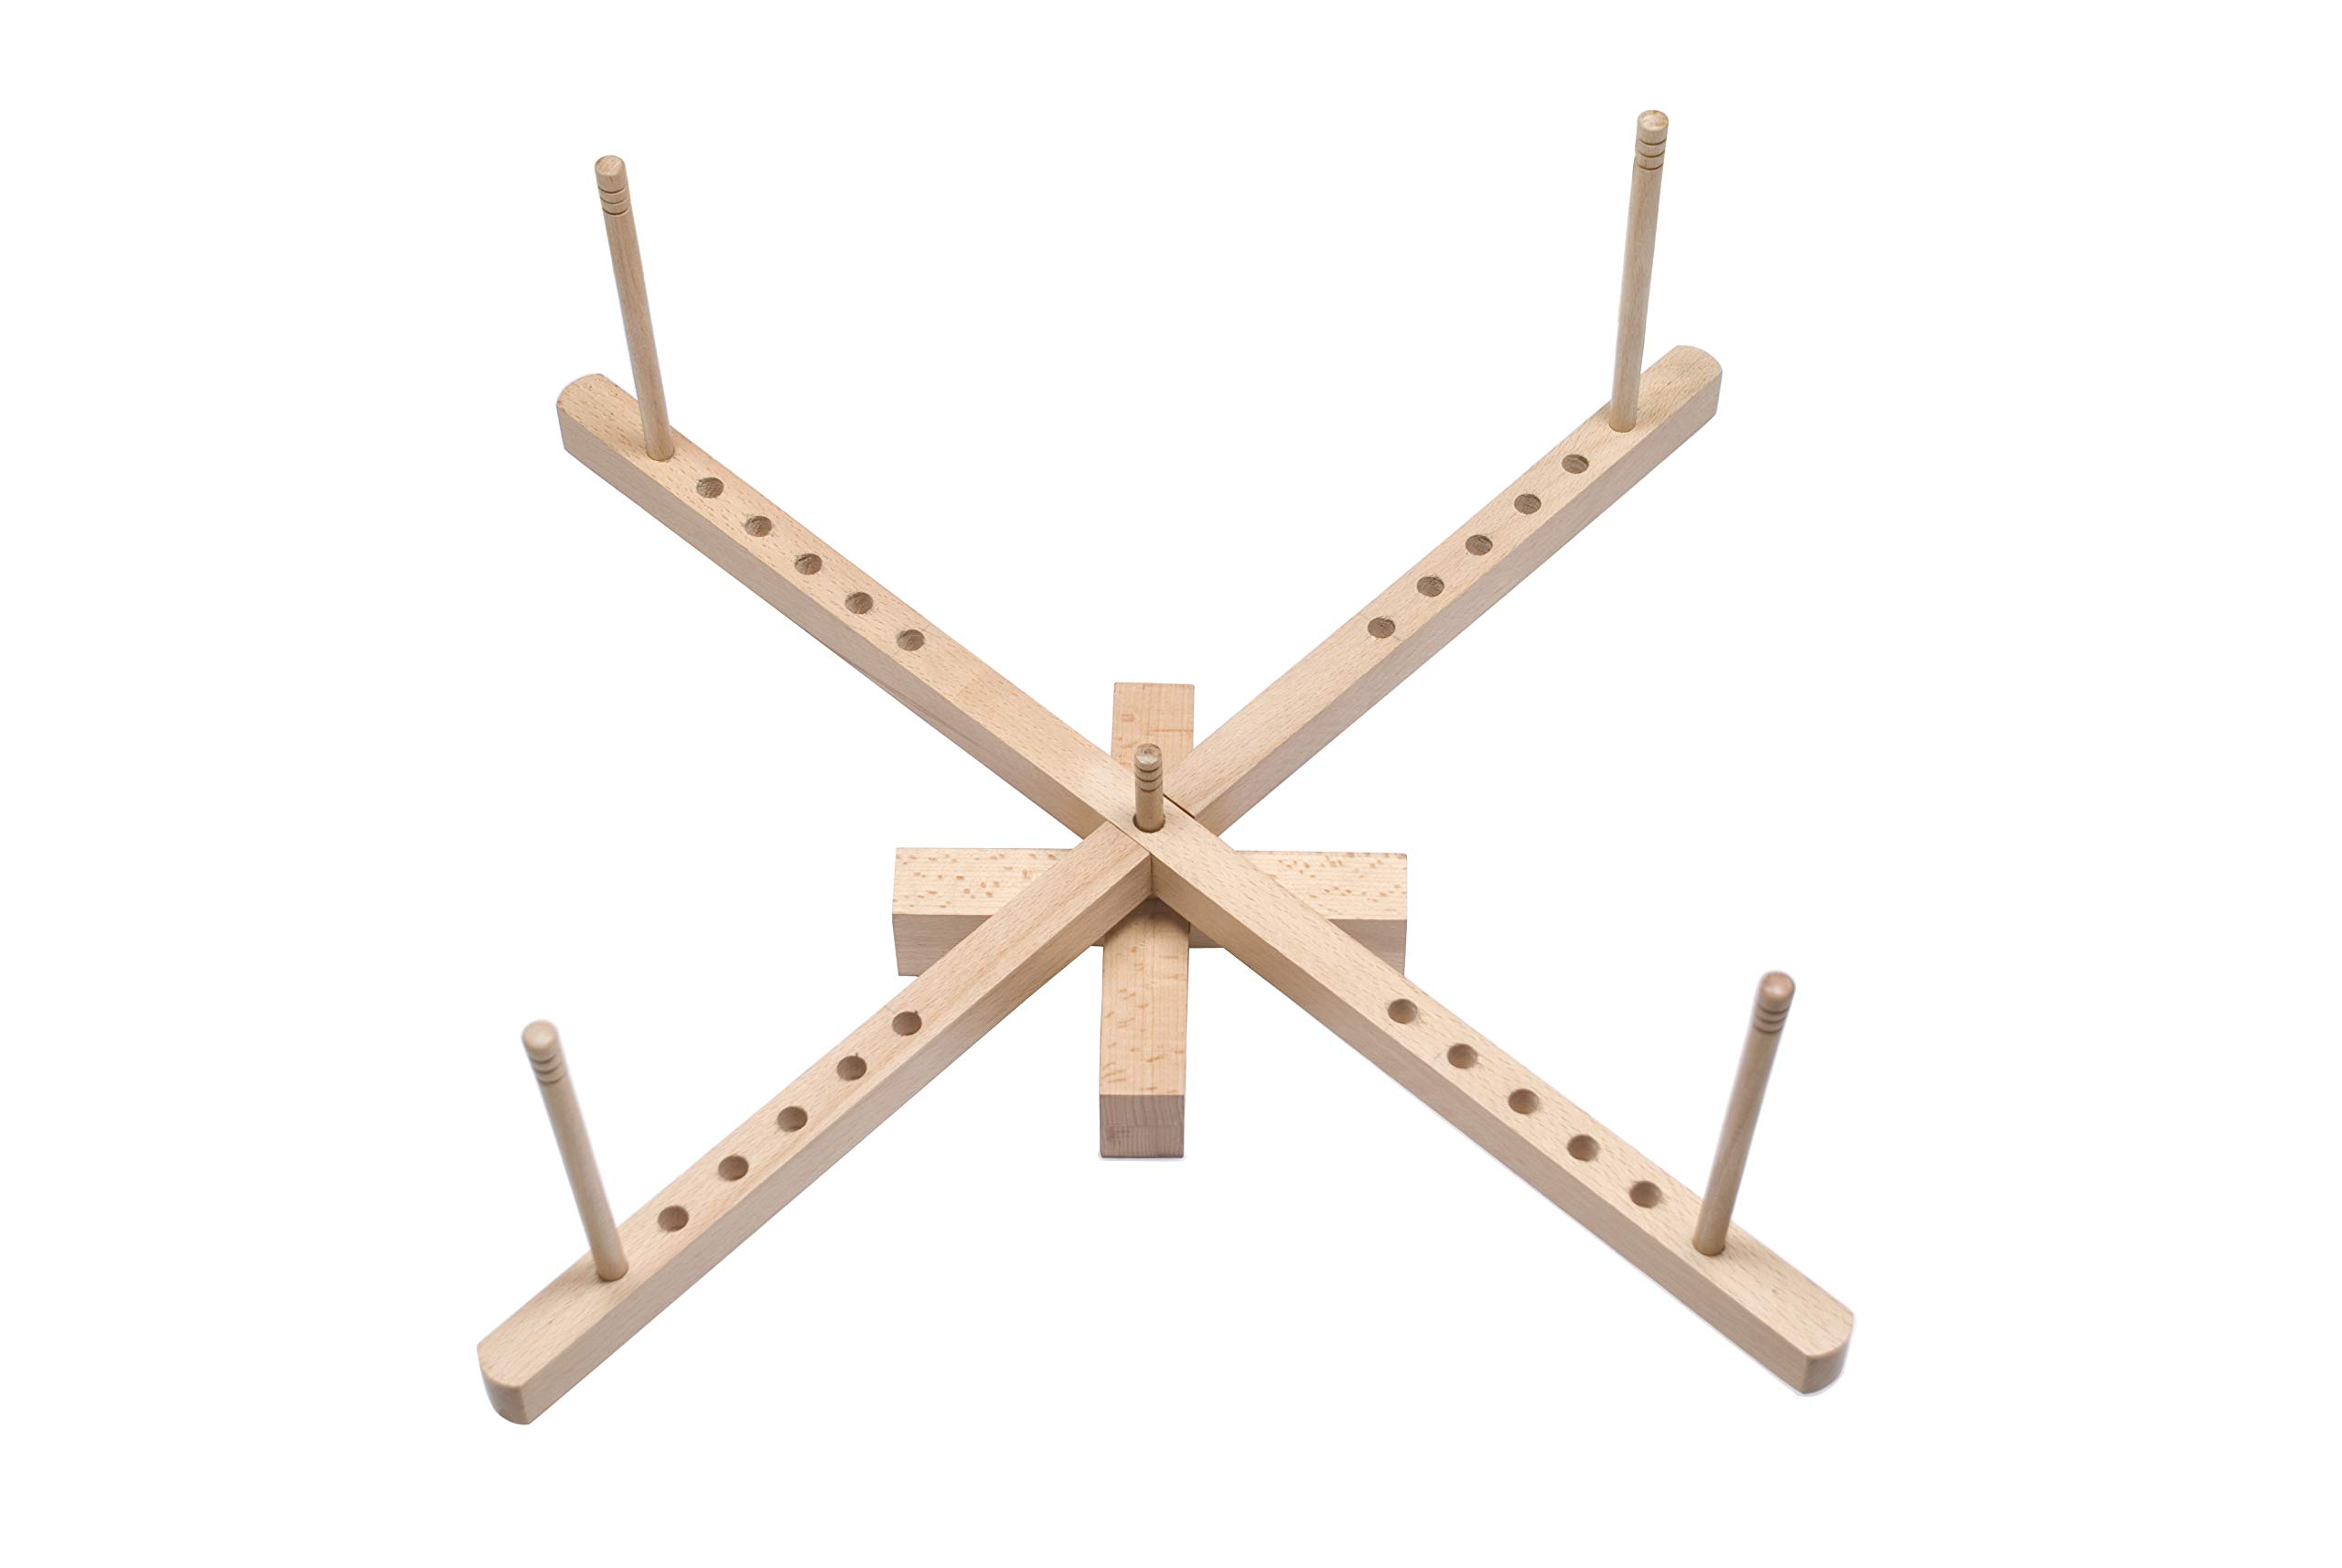 Handmade Tabletop Amish Style Wooden Yarn Swift – Made from Solid Beech Wood–Easy to Assemble. Perfect Gift for Any Memorable Occasions - Handcrafted by Indians Artisans!